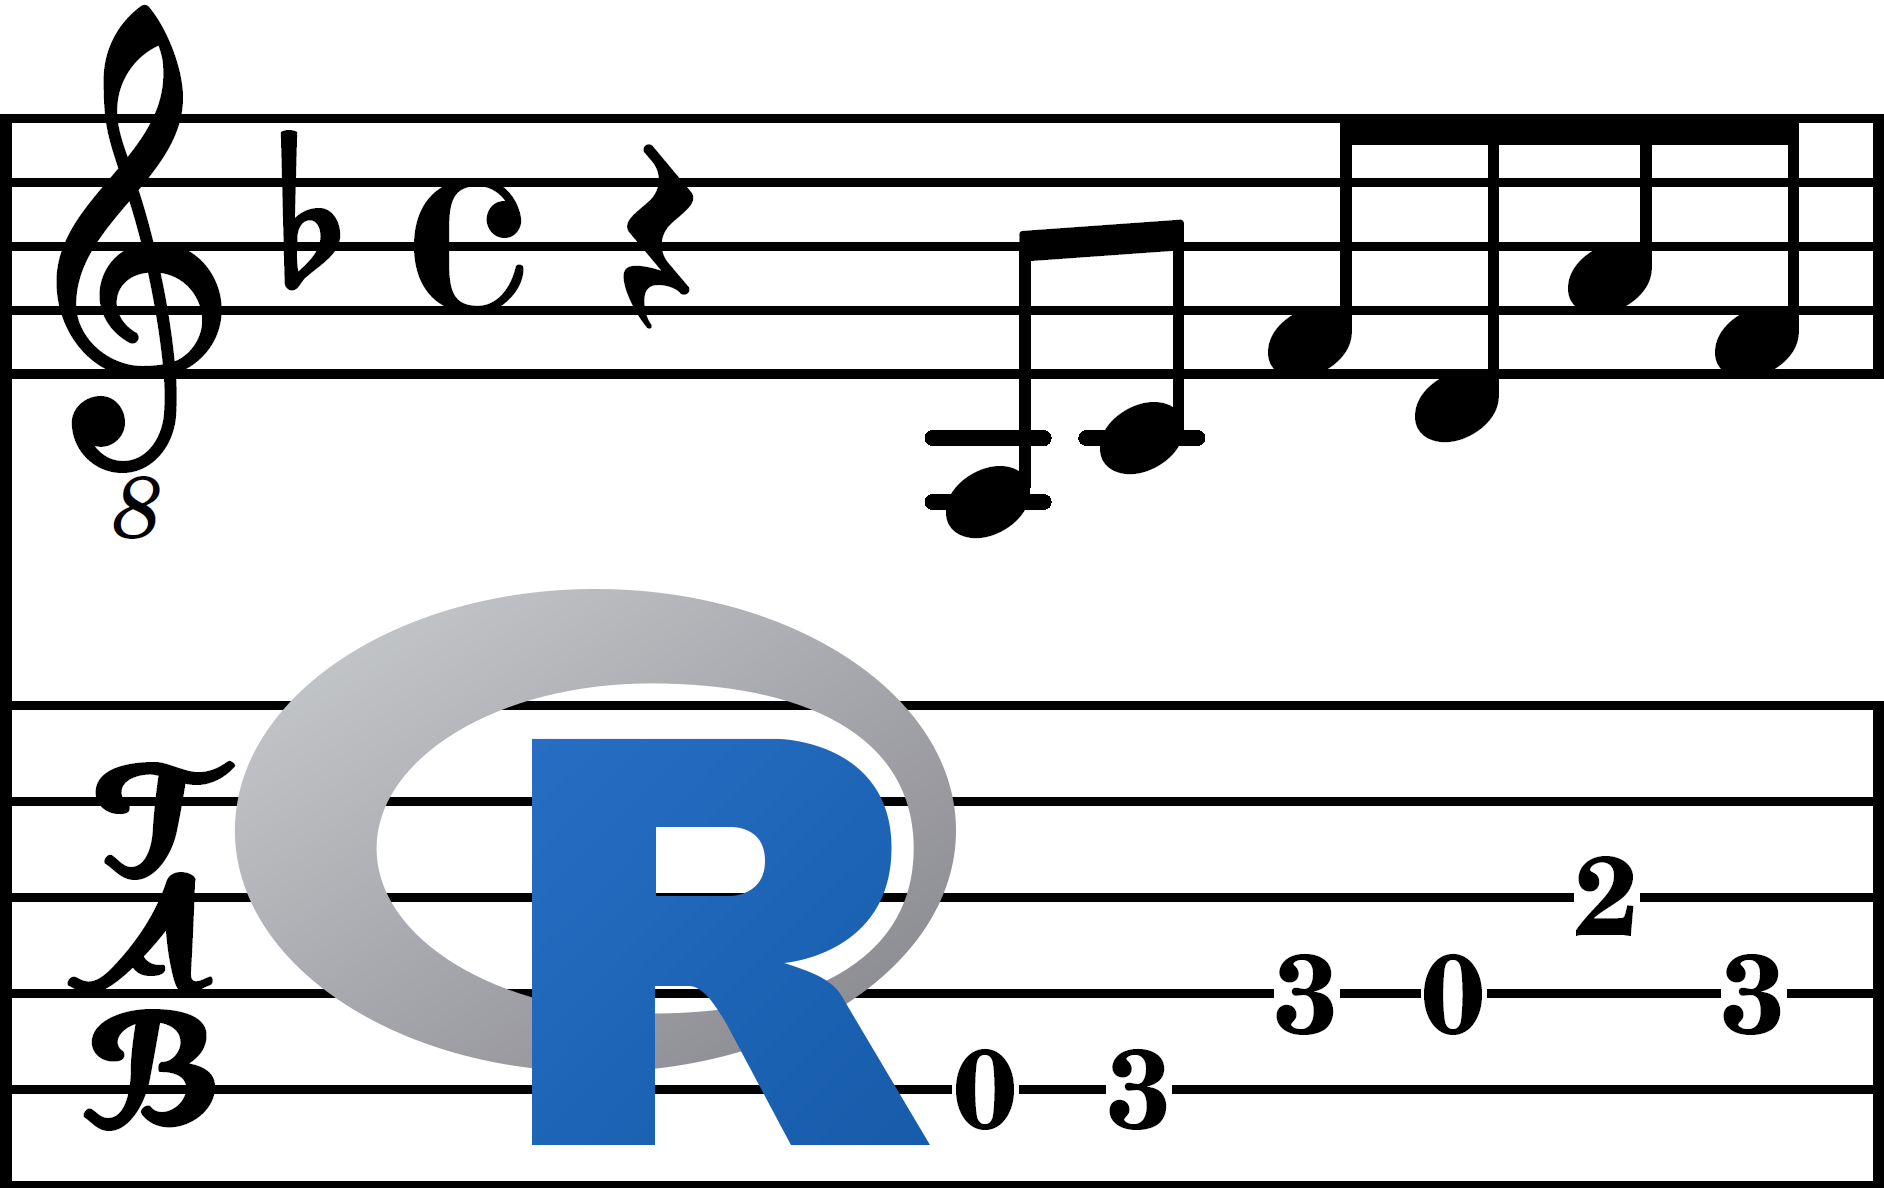 Introducing tabr: guitar tabs with R